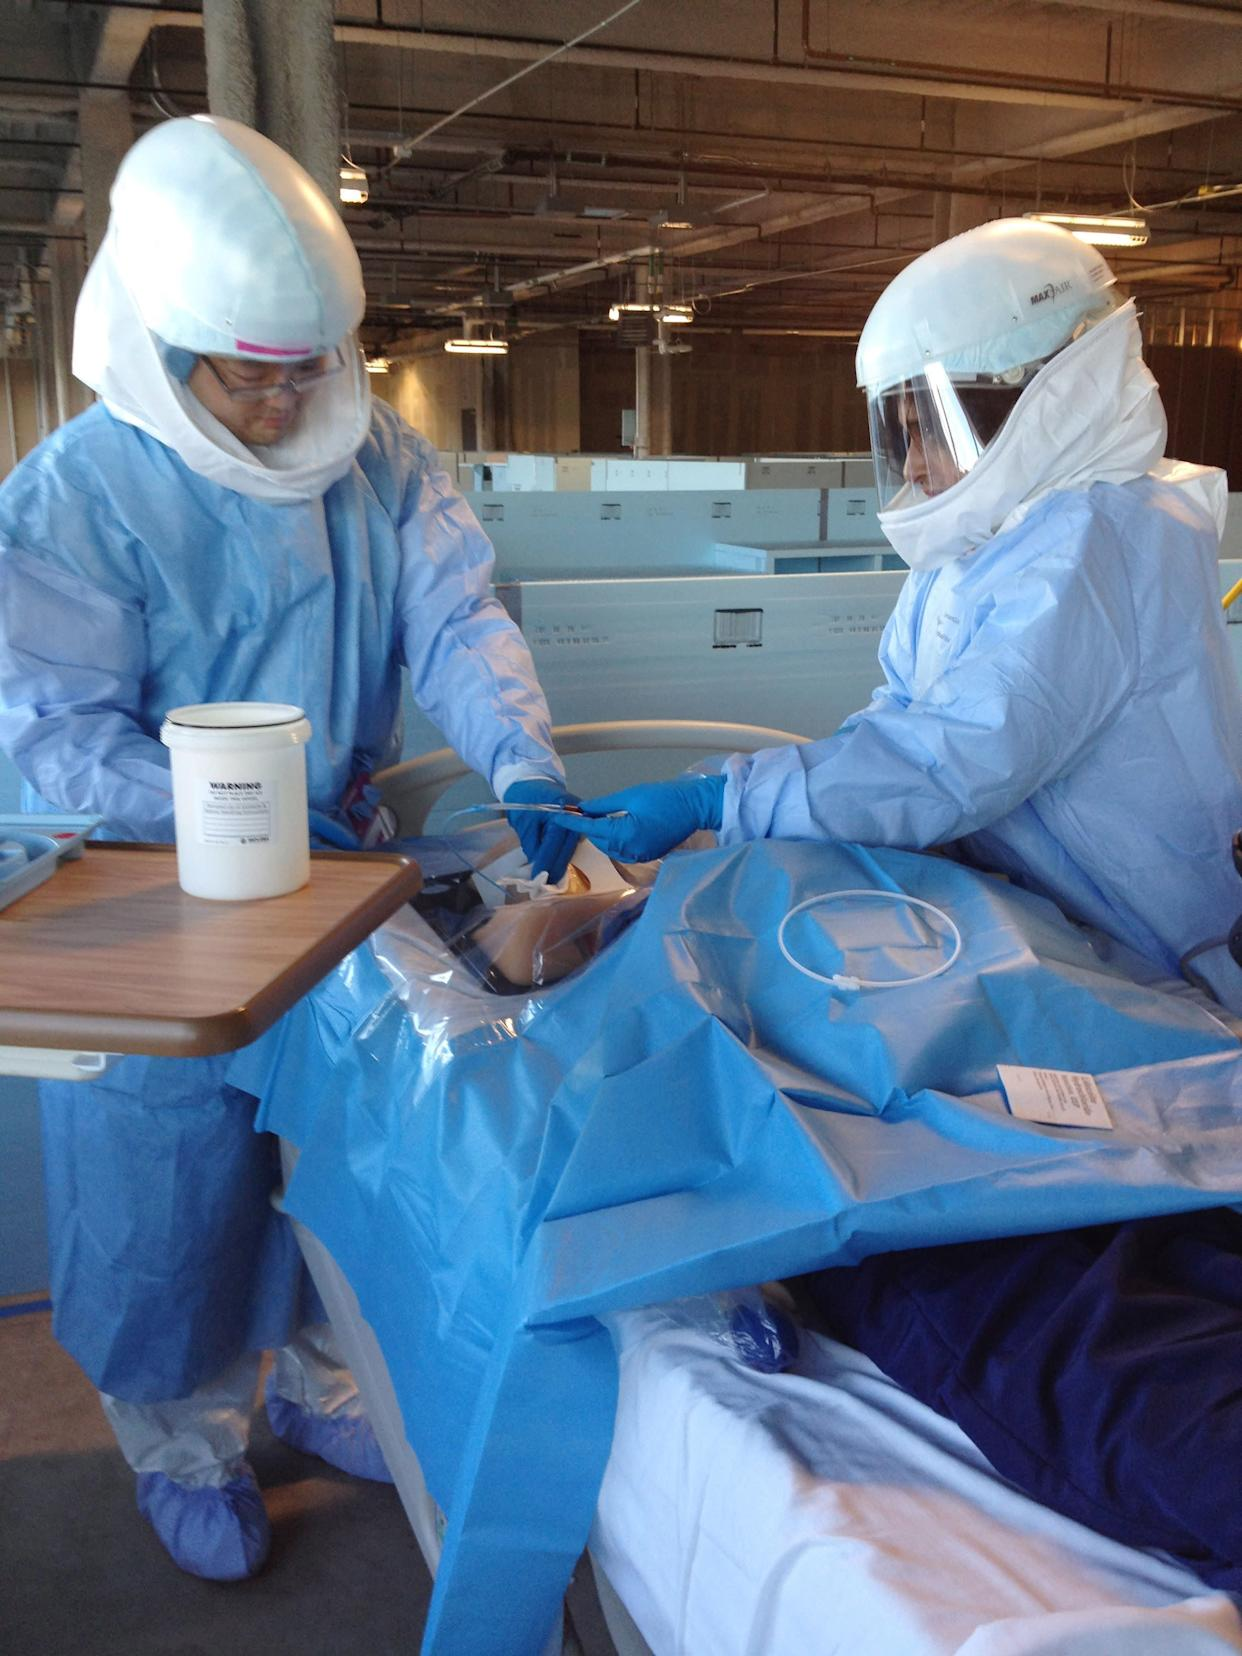 In this Monday, Oct. 6, 2014, photo Dr. Mark Abe, left, and Dr. Neethi Pinto learn how to perform a medical procedure on a patient mannequin while wearing protective gear during Ebola preparedness training at the University of Chicago. U.S. hospitals are preparing for possible Ebola patients; the only one diagnosed so far in this country is being treated in Texas, while the outbreak in Africa has killed more than 3,400 people. (AP Photo/Lindsey Tanner)